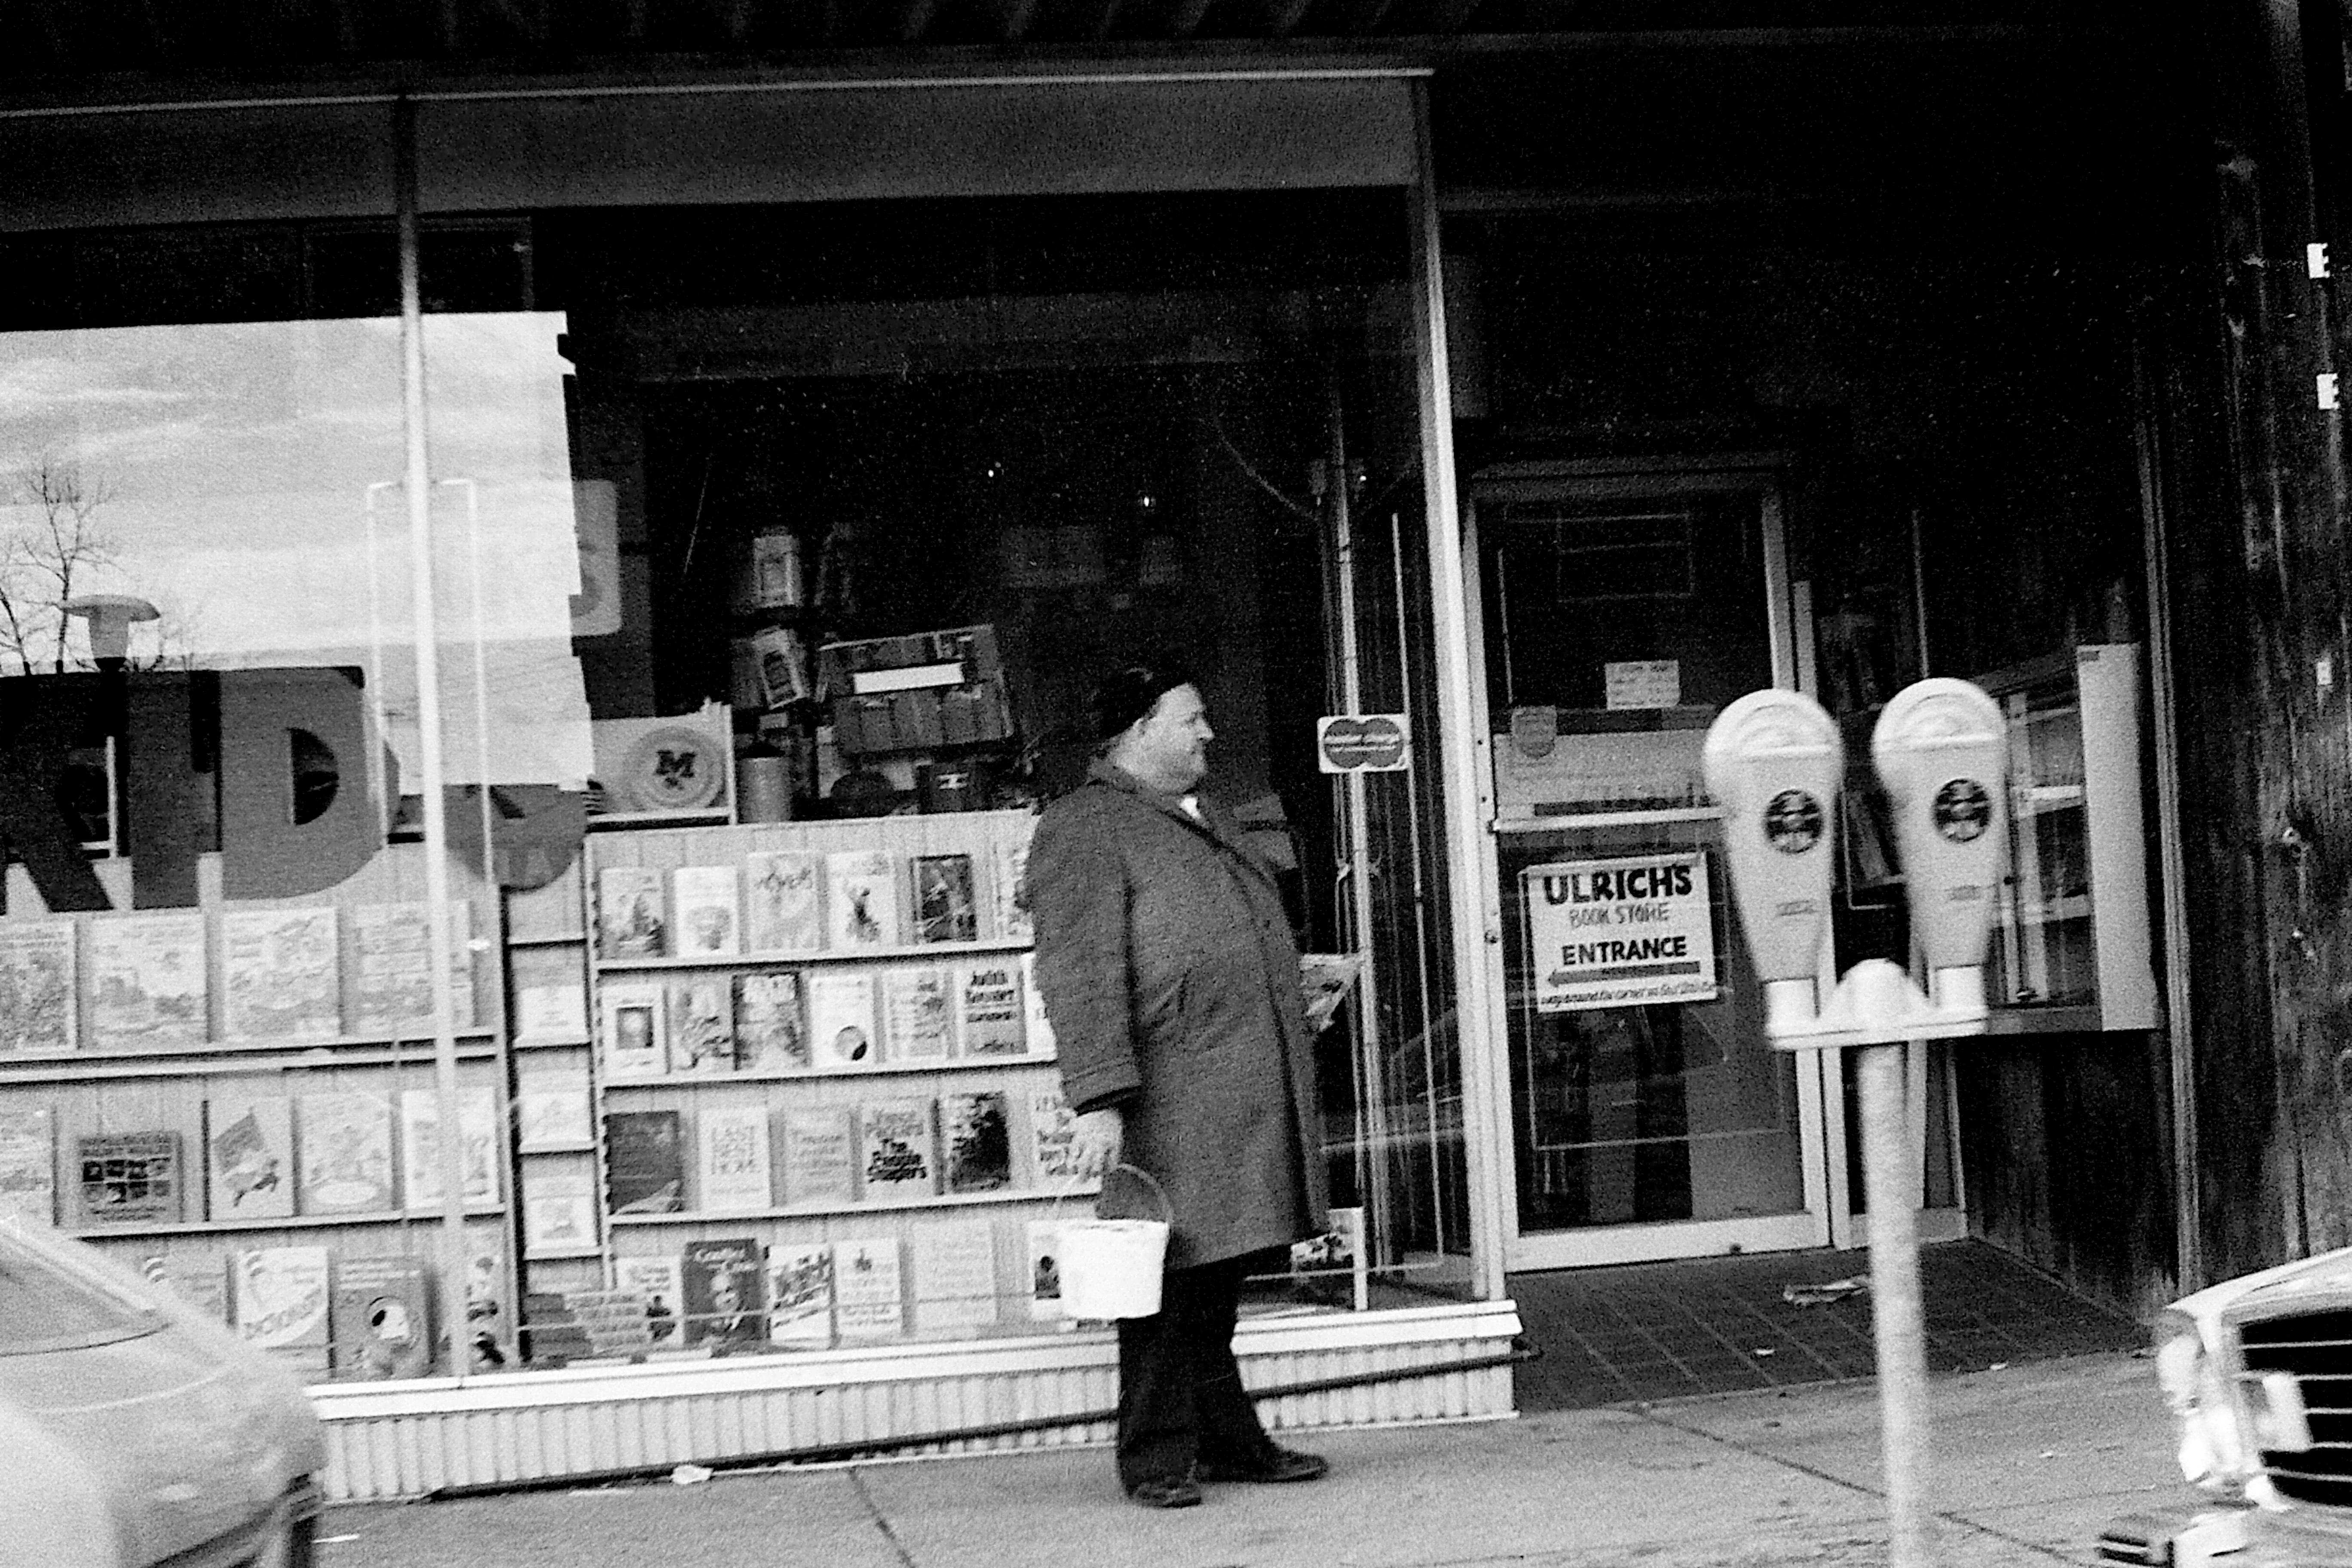 Customer Standing Outside Ulrich's Bookstore, 1977 image